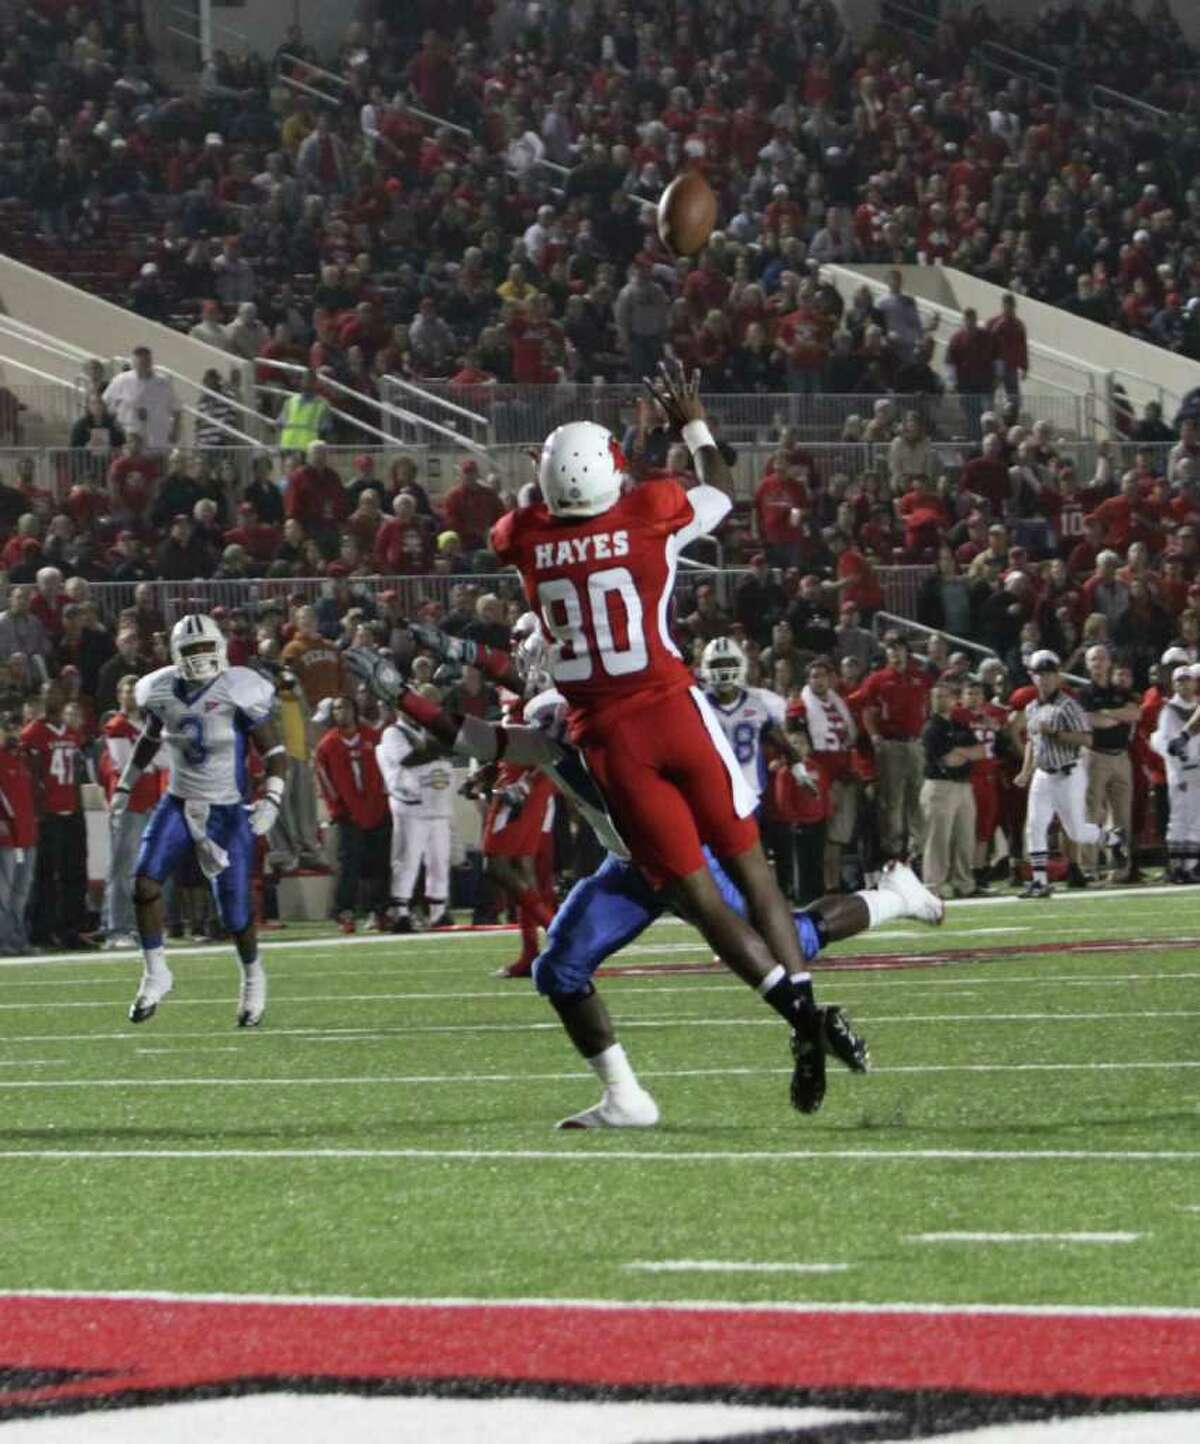 J.J. Hayes makes a catch inside the 5 yard line to set up Asante's rushing touchdown.